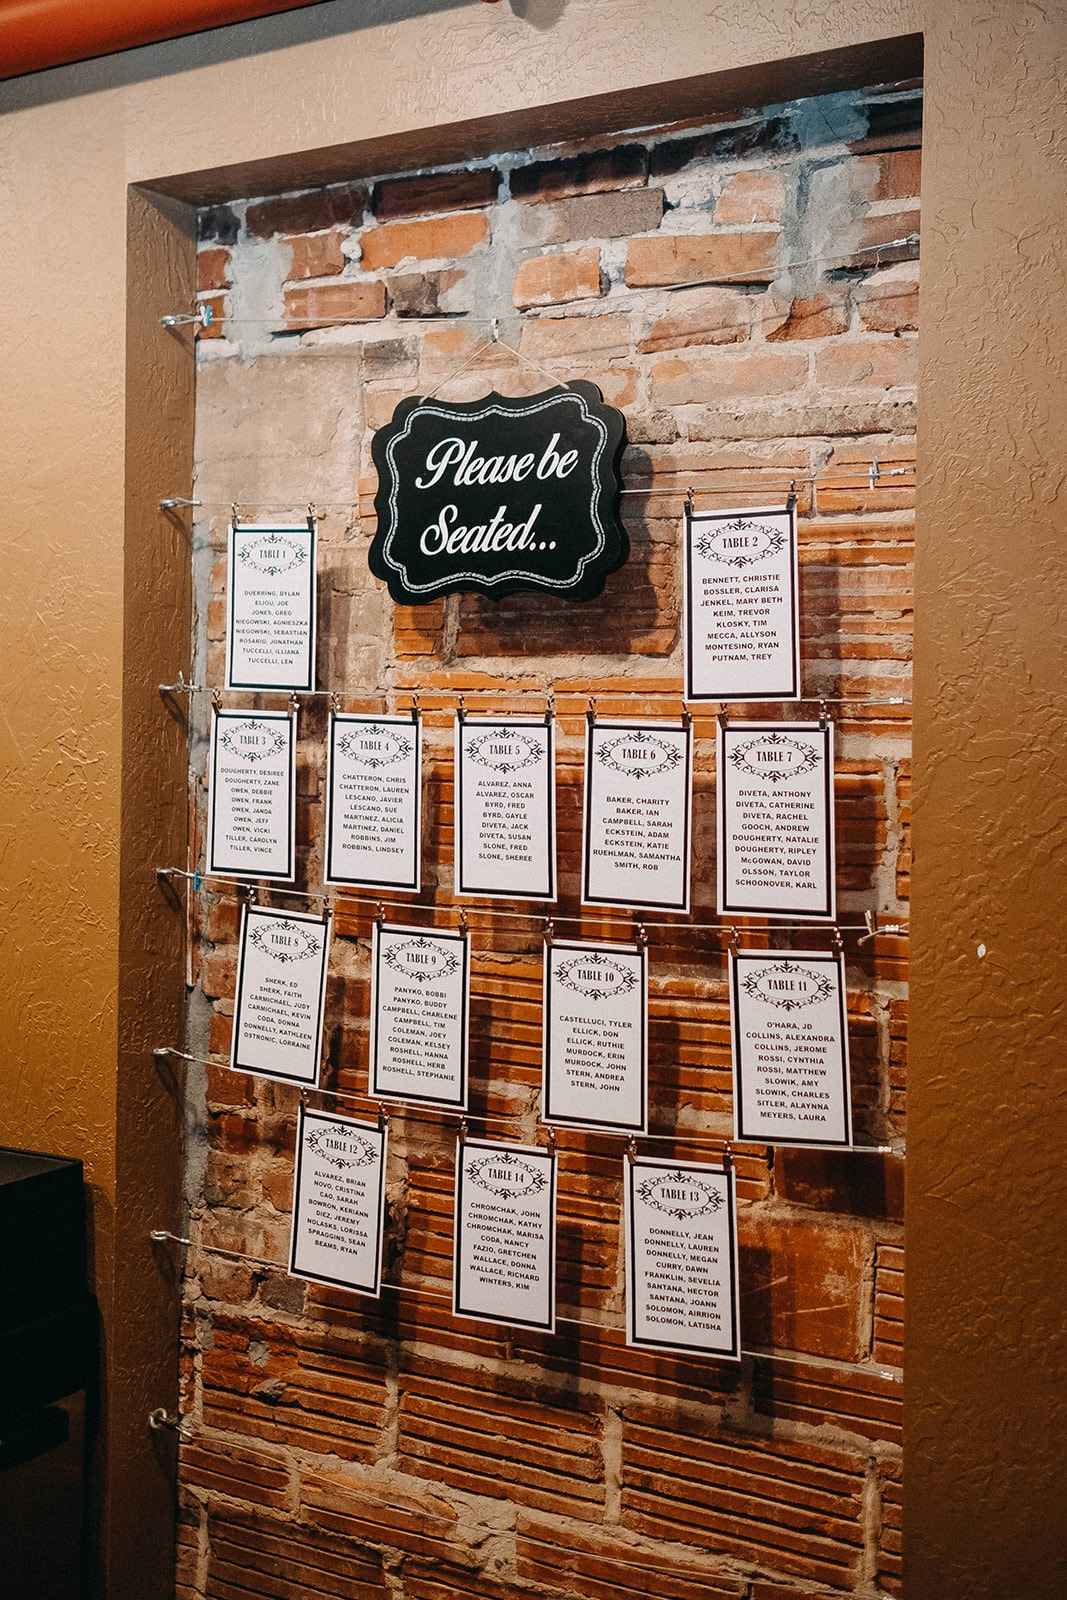 Downtown St. Pete Vintage Wedding Decor and Seating Chart against Exposed Red Brick Wall | Tampa Bay Historic Wedding Venue NOVA 535